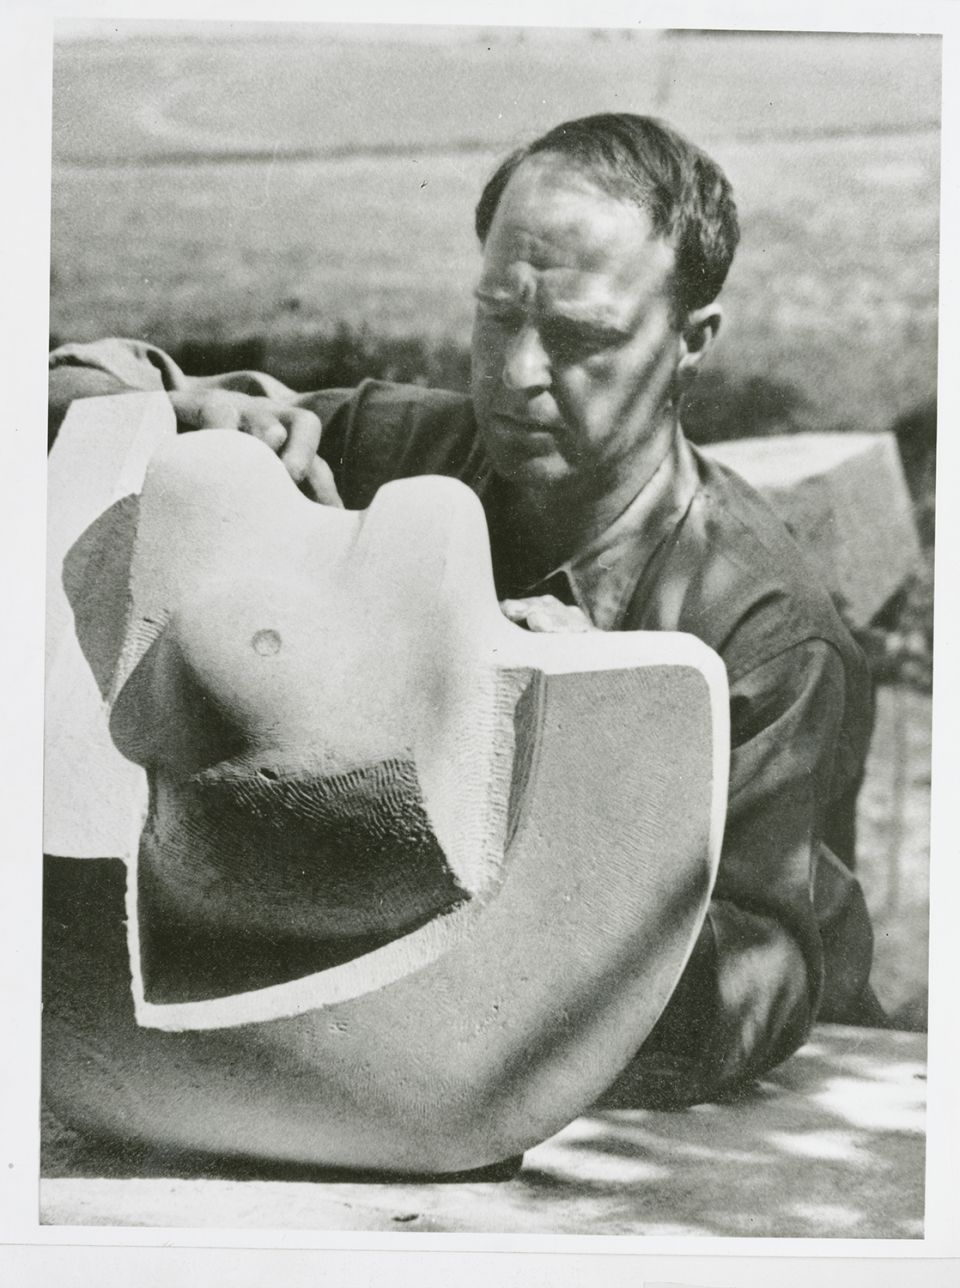 Henry Moore carving Sculpture 1937 at Burcroft, Kent